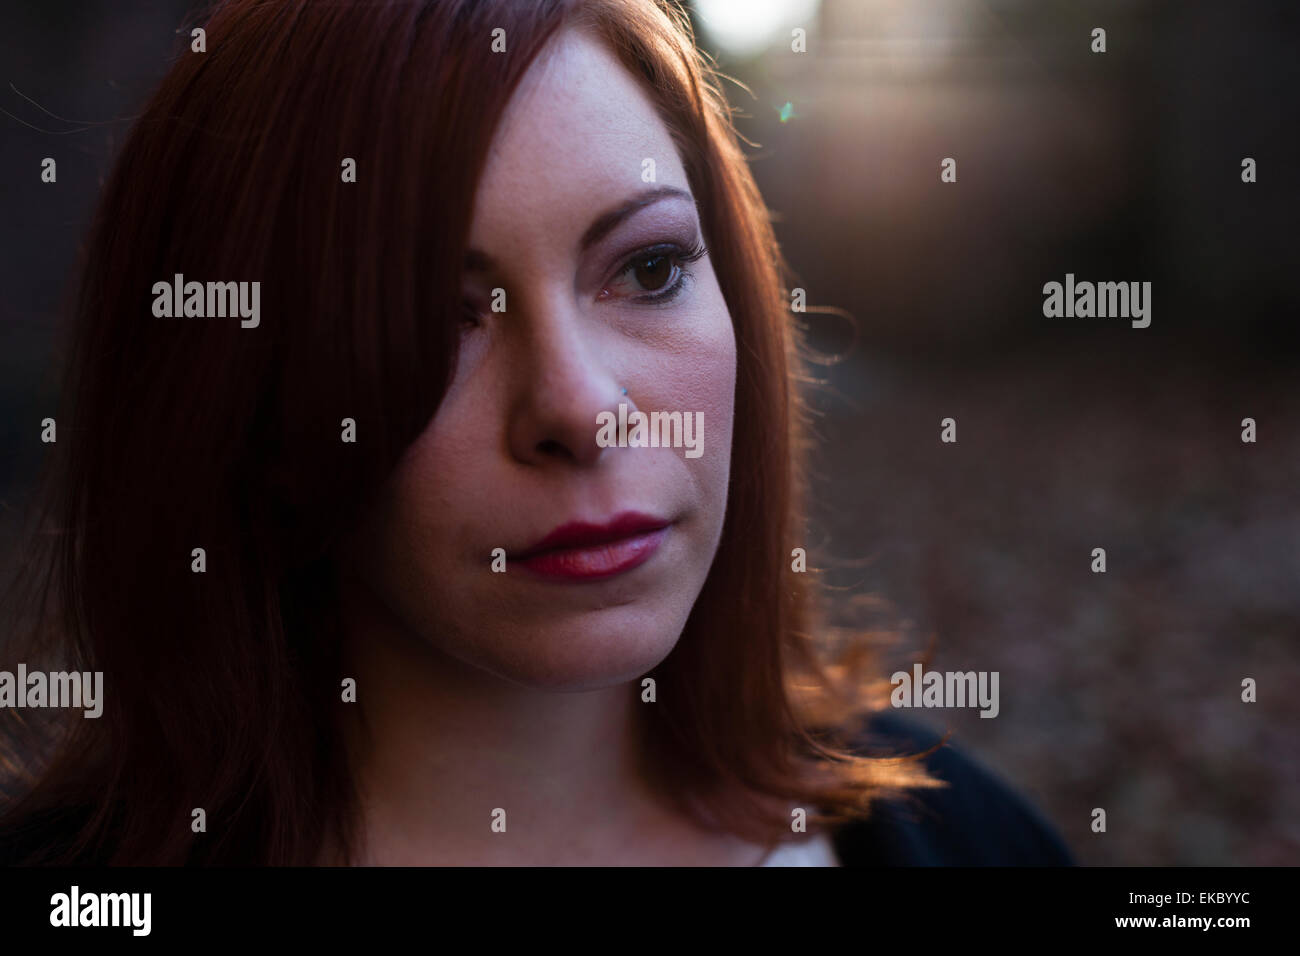 Portrait of mid adult woman, looking away, outdoors Photo Stock